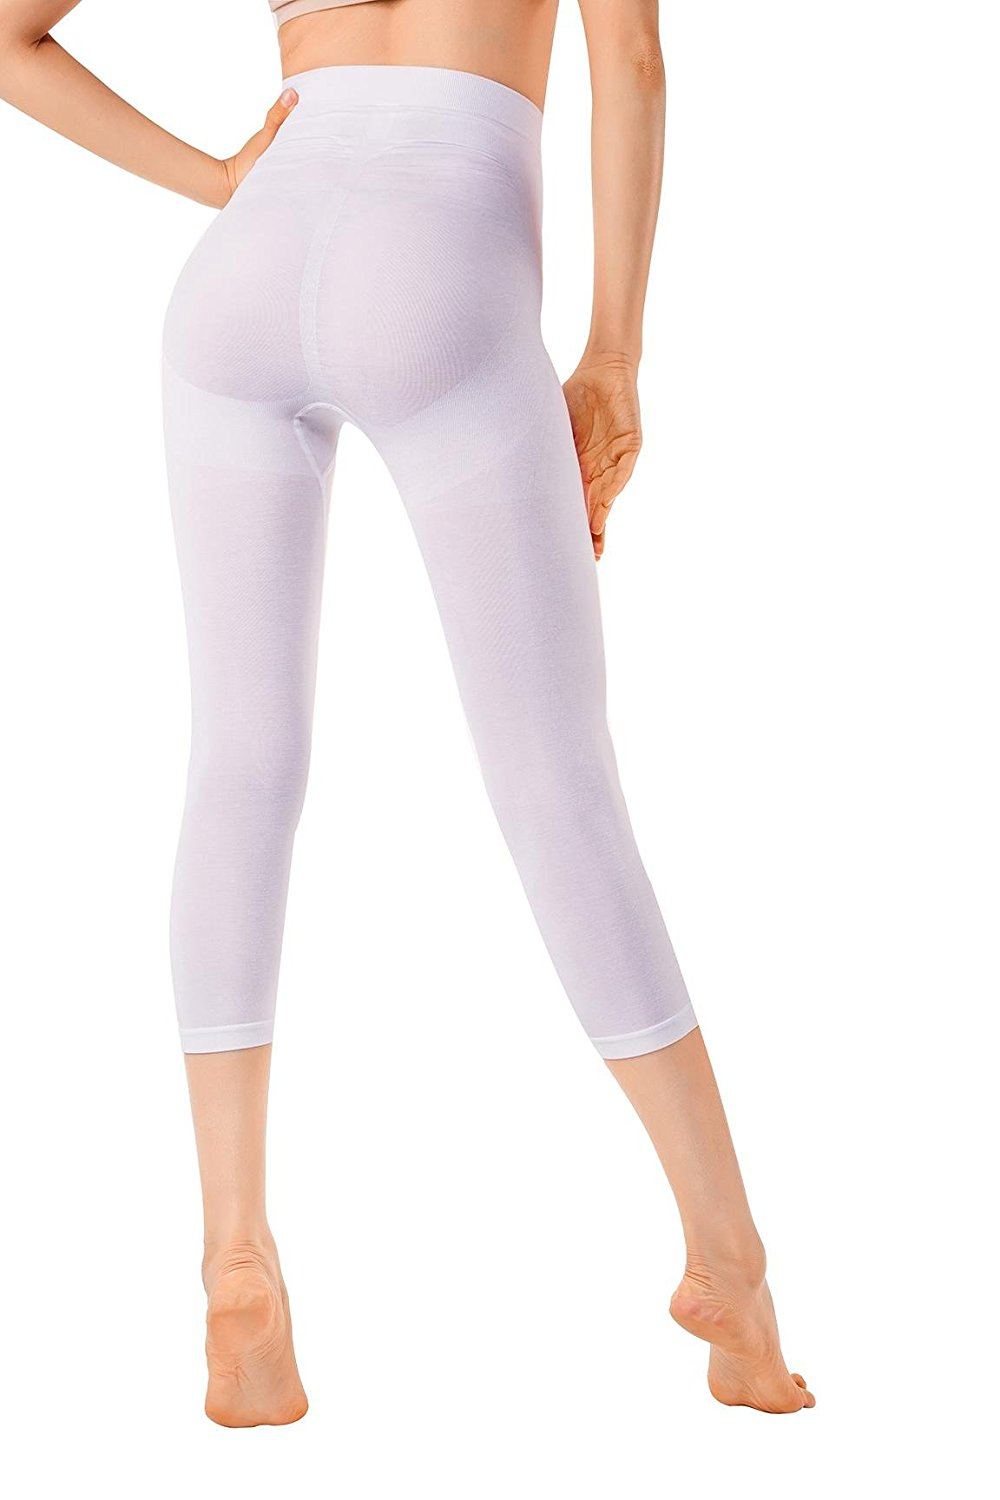 New Cheap Red Sports Leggings, find Red Sports Leggings deals on line  ER92